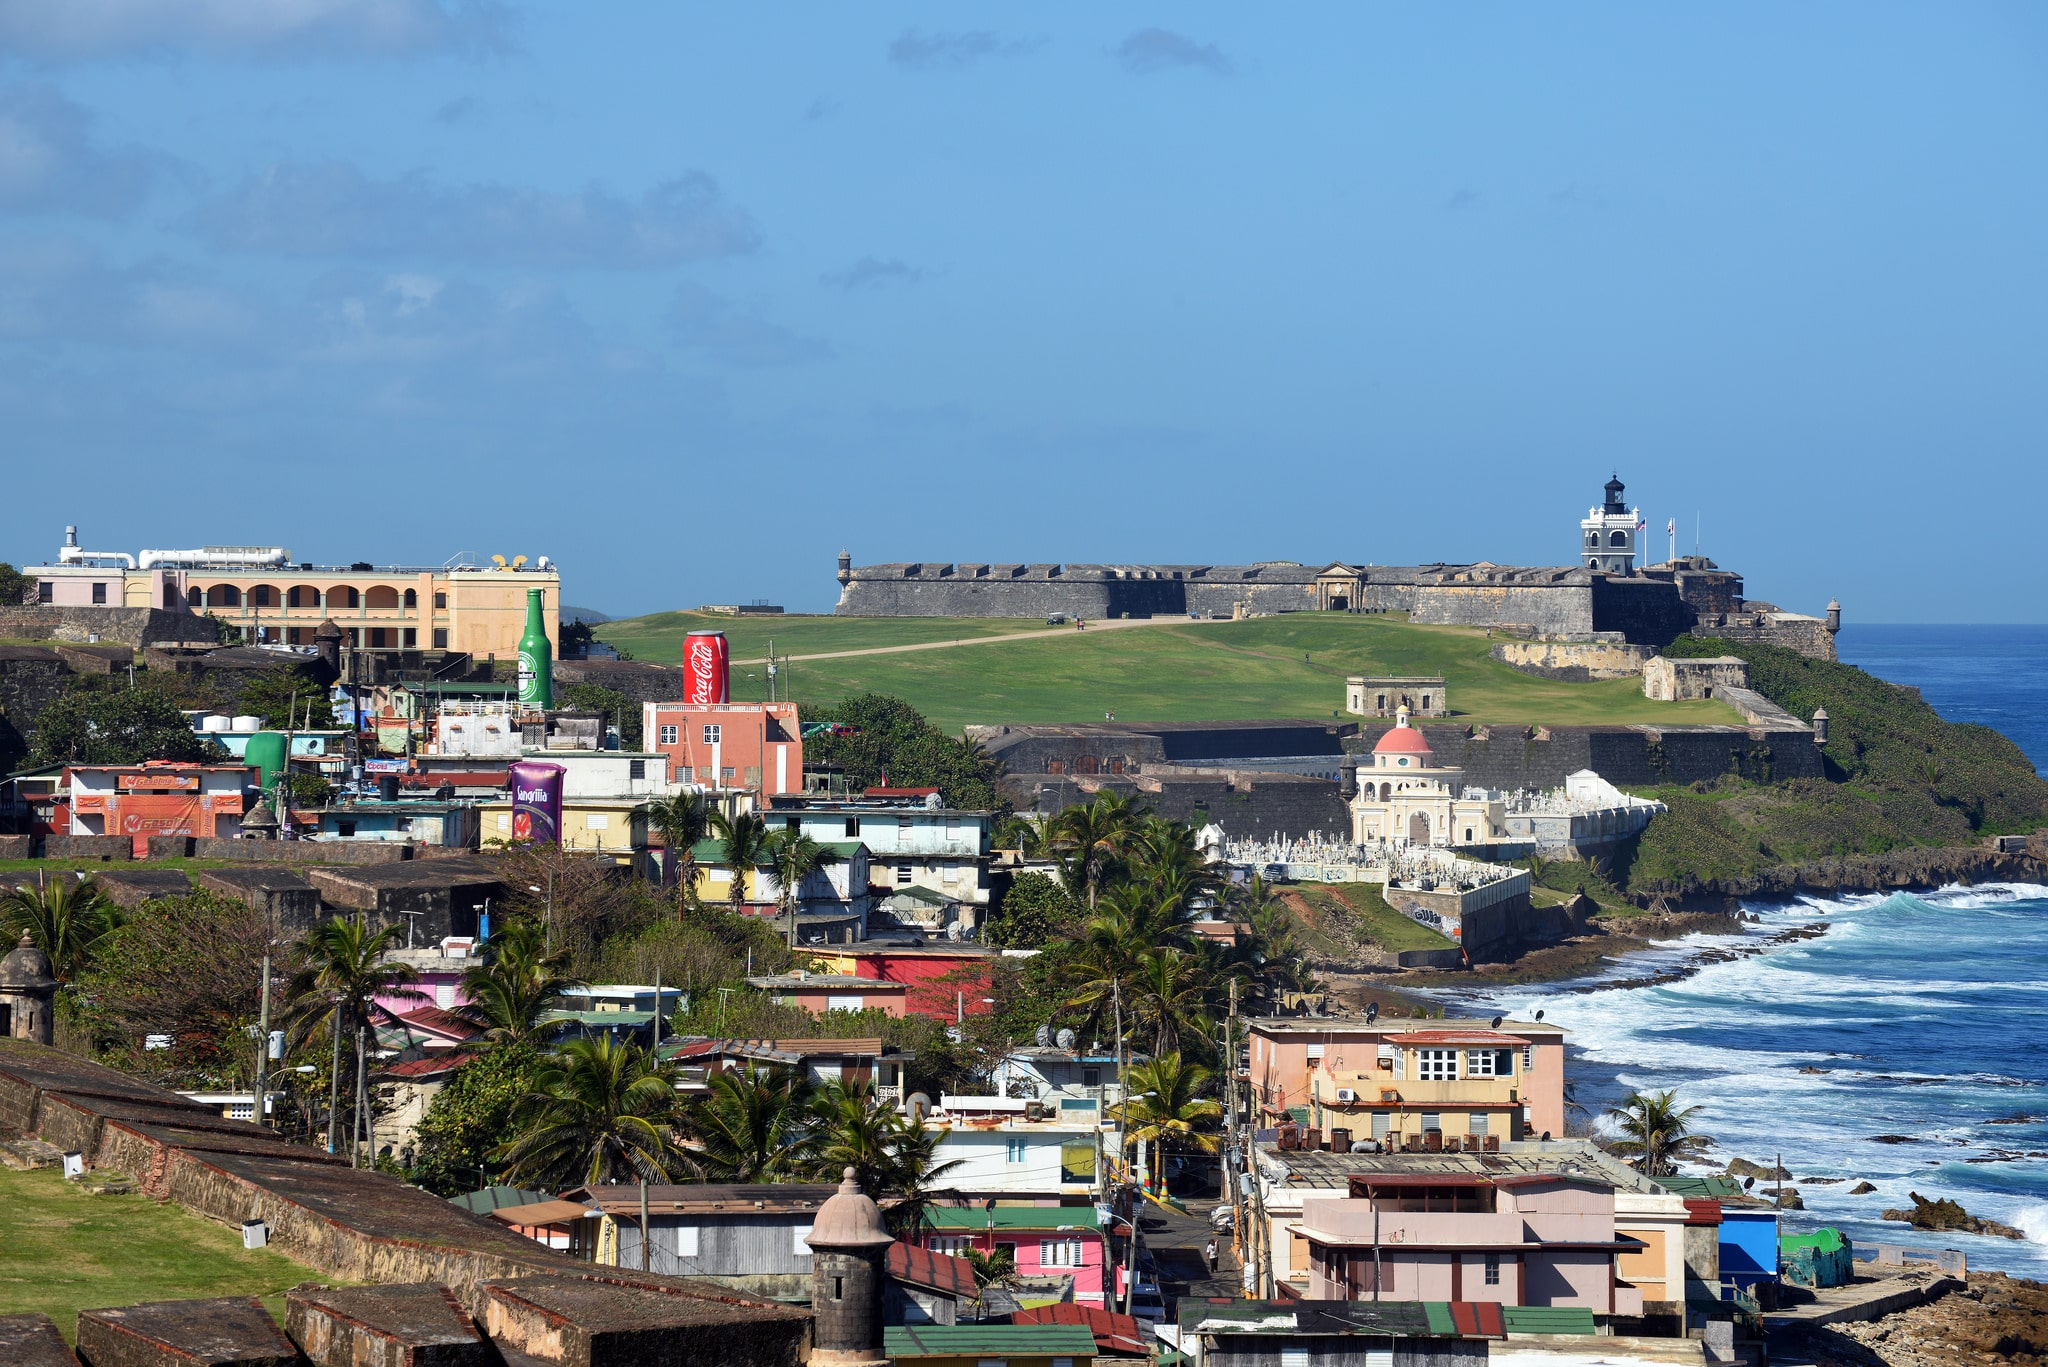 Visiting La Perla is one of the fun things to do in san juan puerto rico